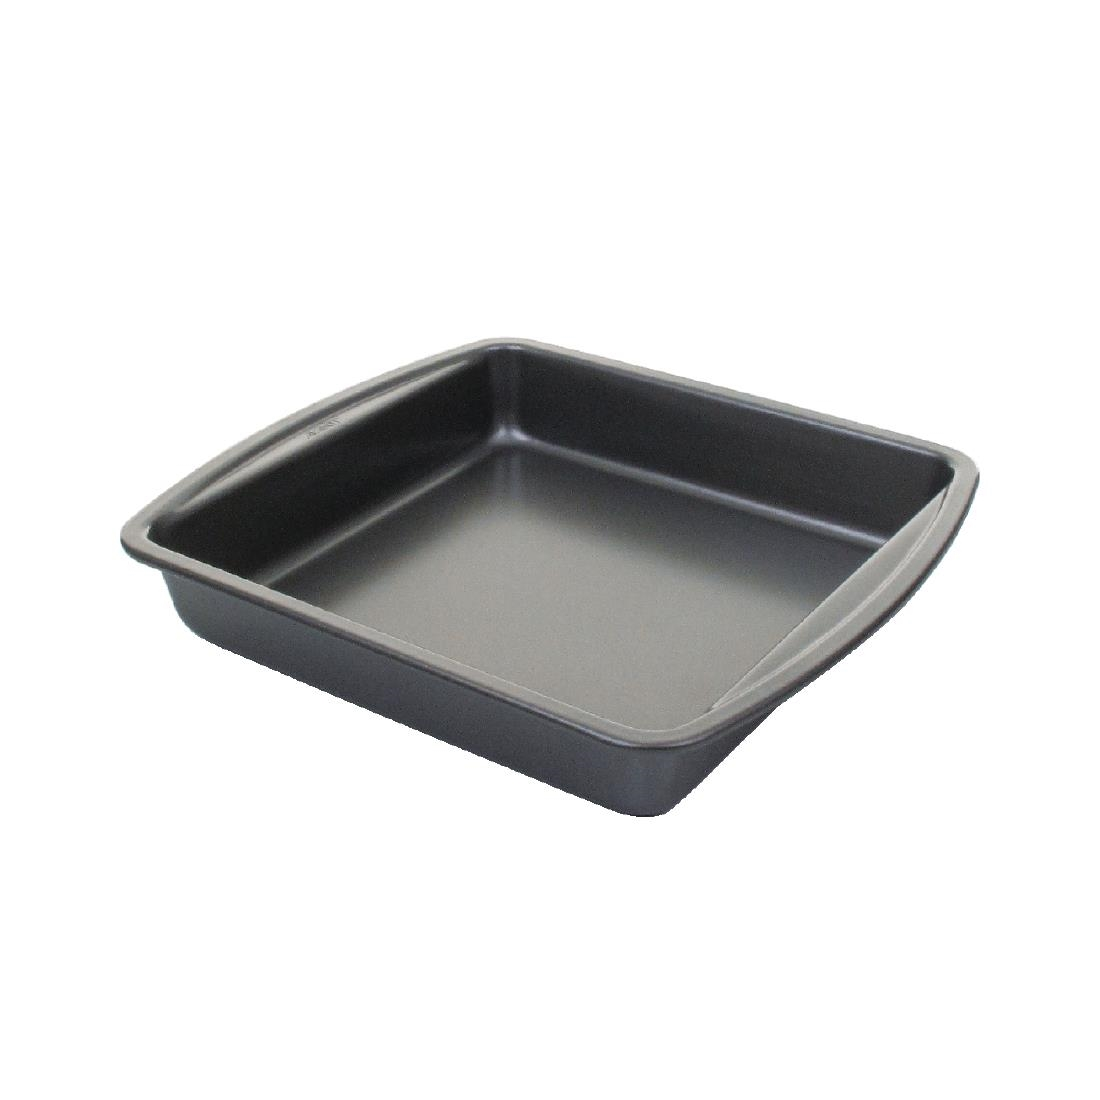 Image of Avanti Non Stick Square Cake Tin 230mm